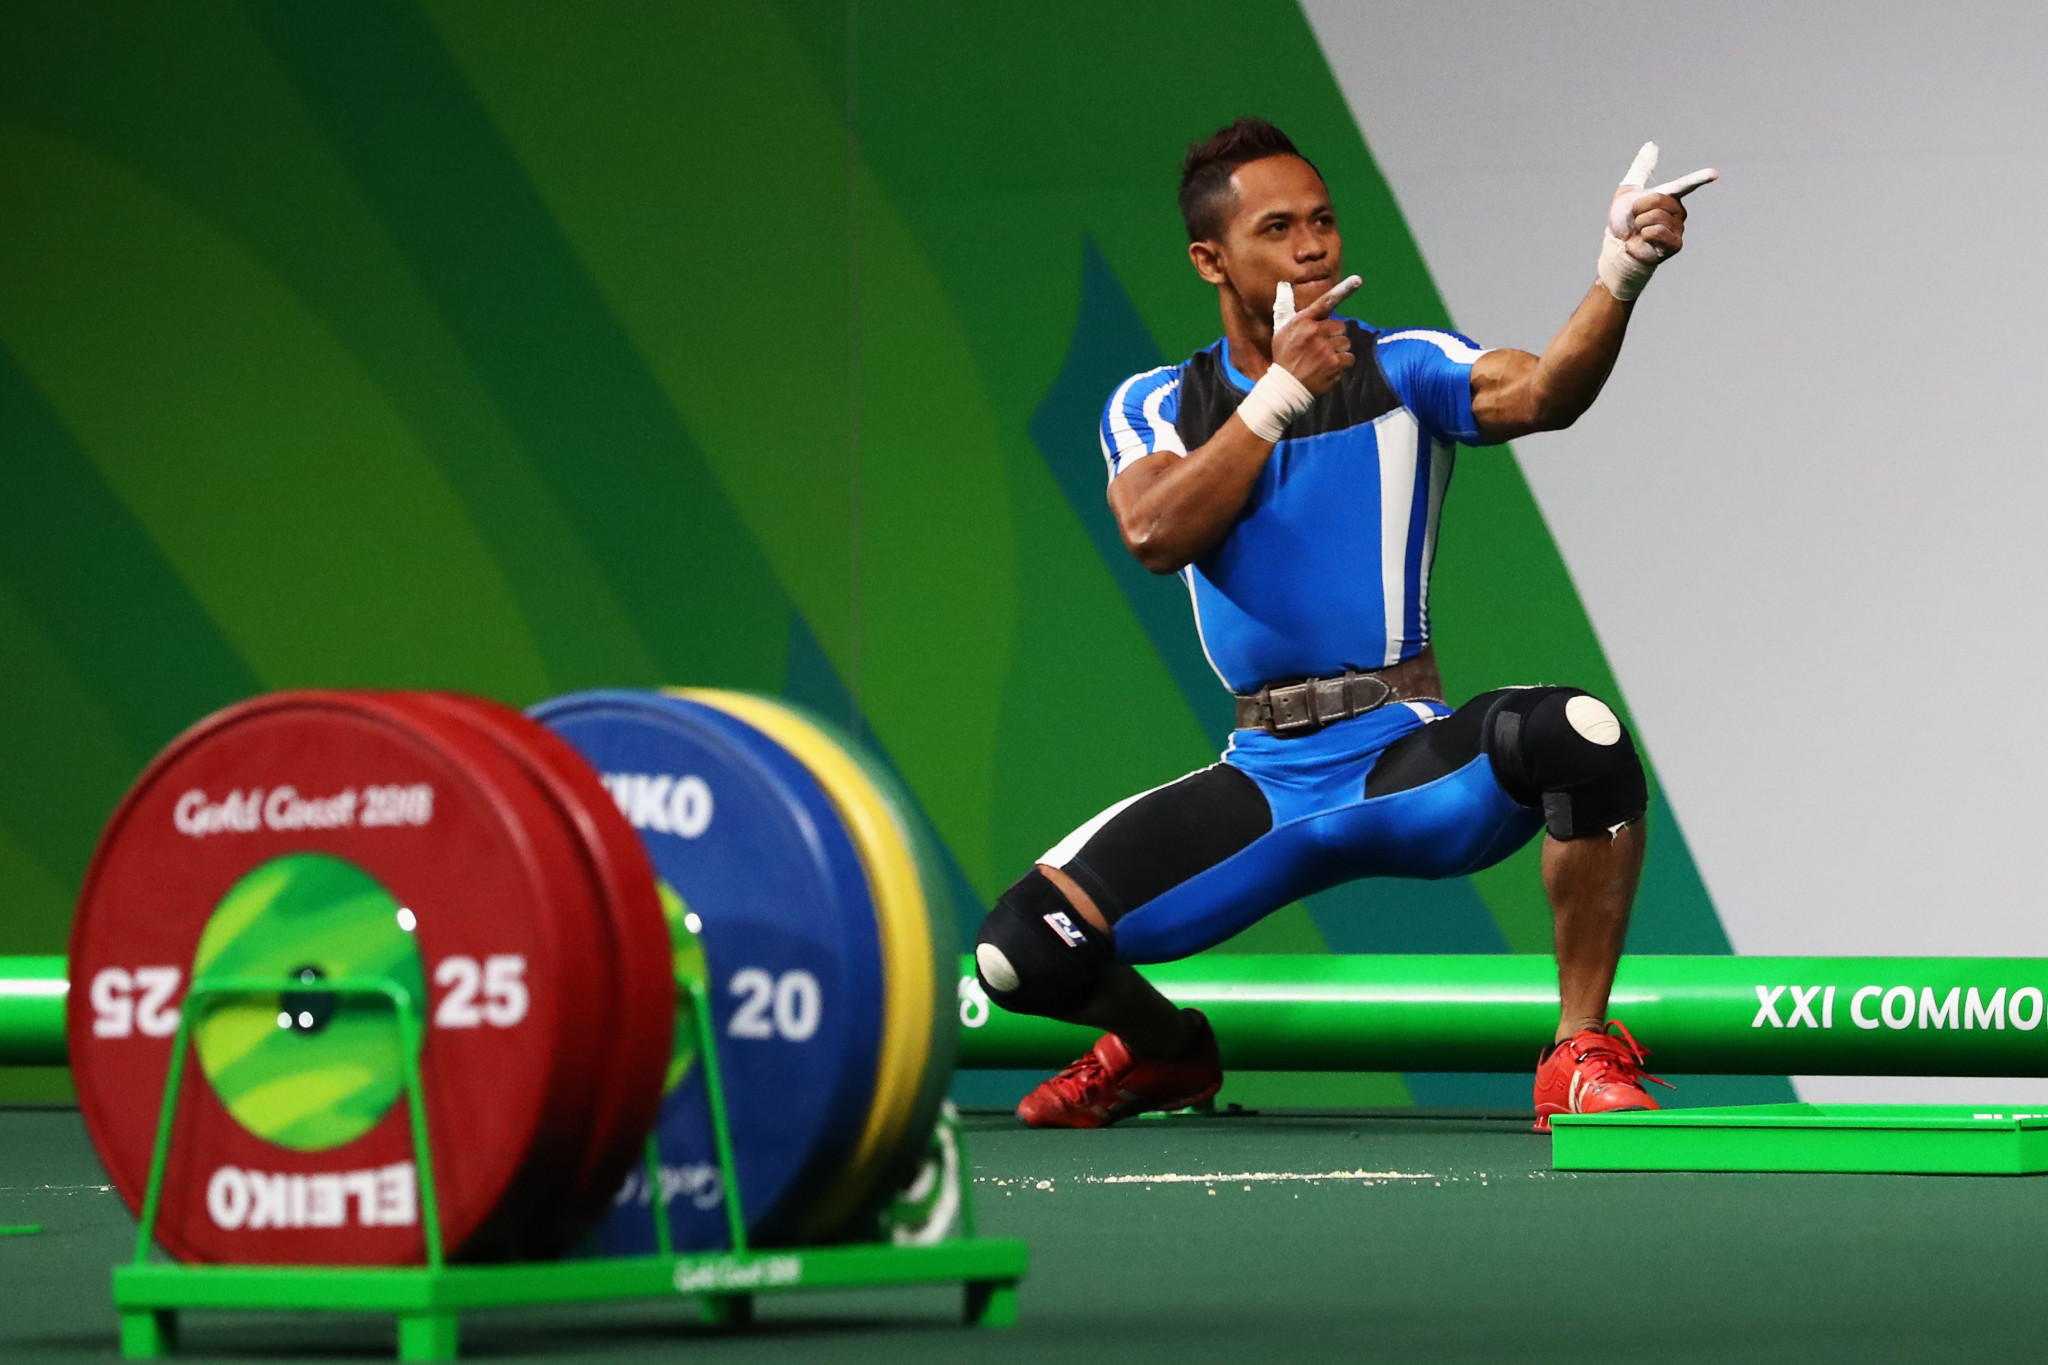 Malaysia's Muhammad Azroy Hazalwa Izhar Ahmad broke the Commonwealth Games record to win the men's 56kg event ©Getty Images